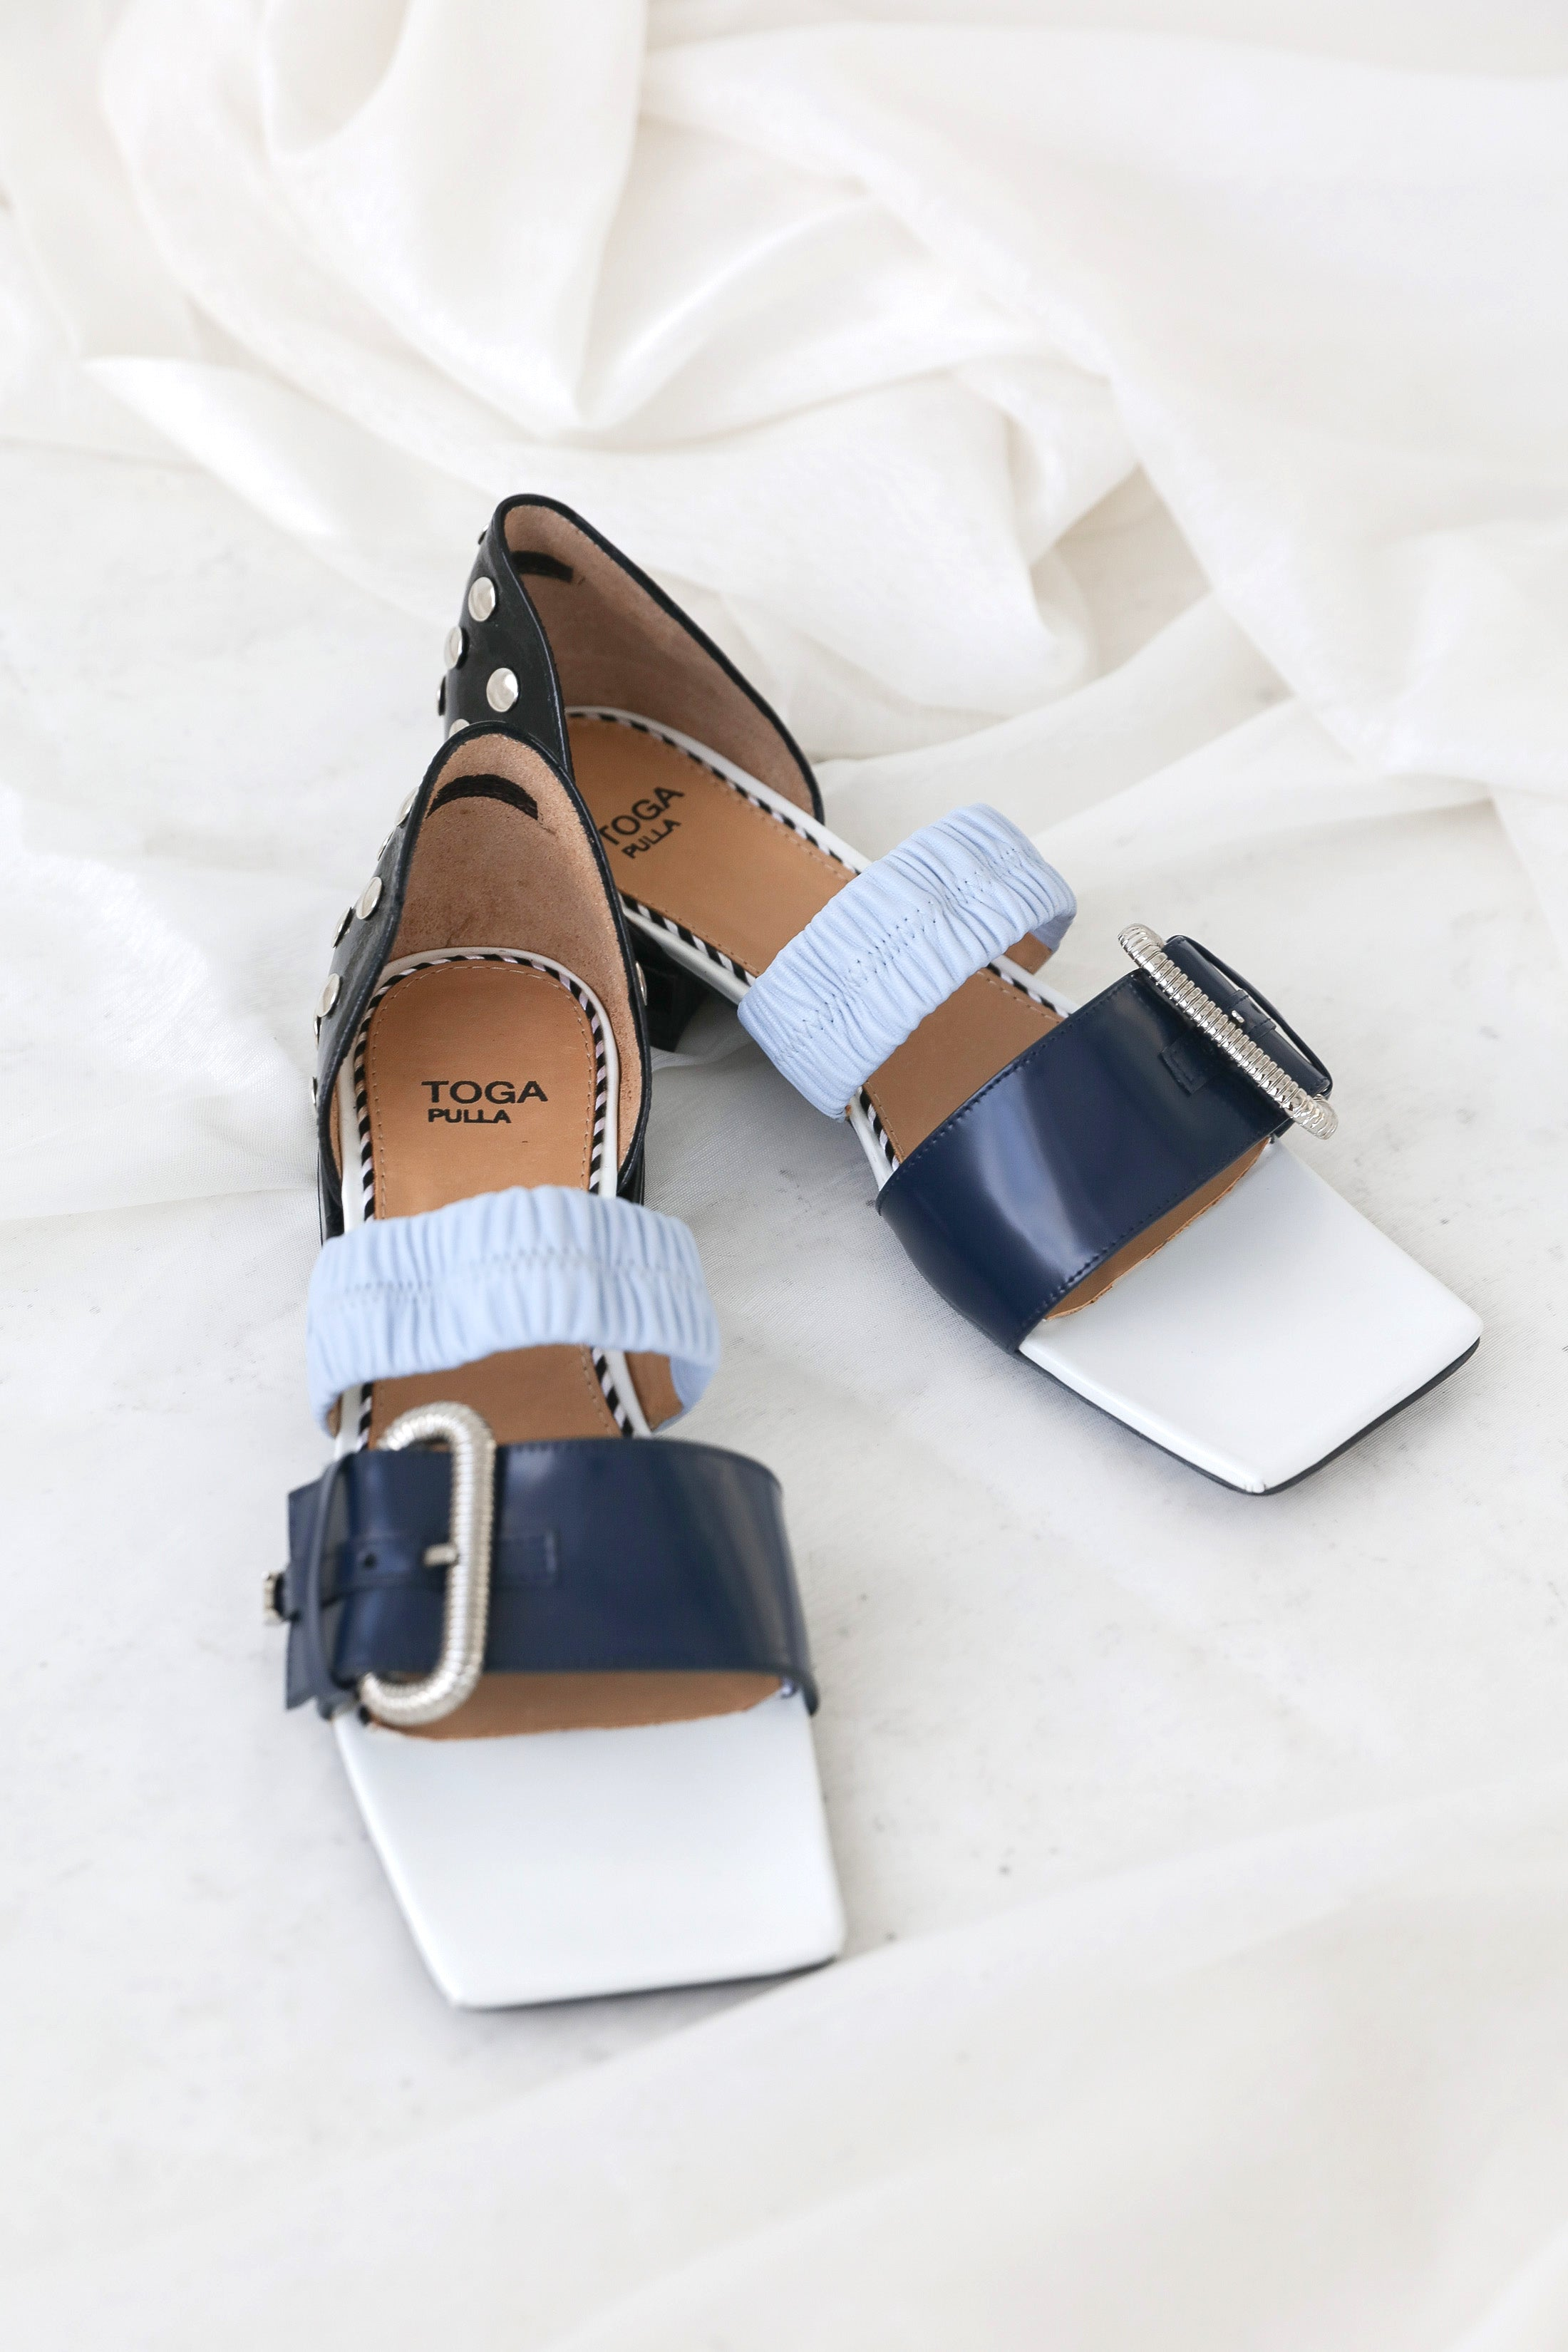 TOGA PULLA Double Strap Sandals Shoes TOGA - NOLM - Clothes Online - nolmau.com - Sydney-Australia Online Shopping